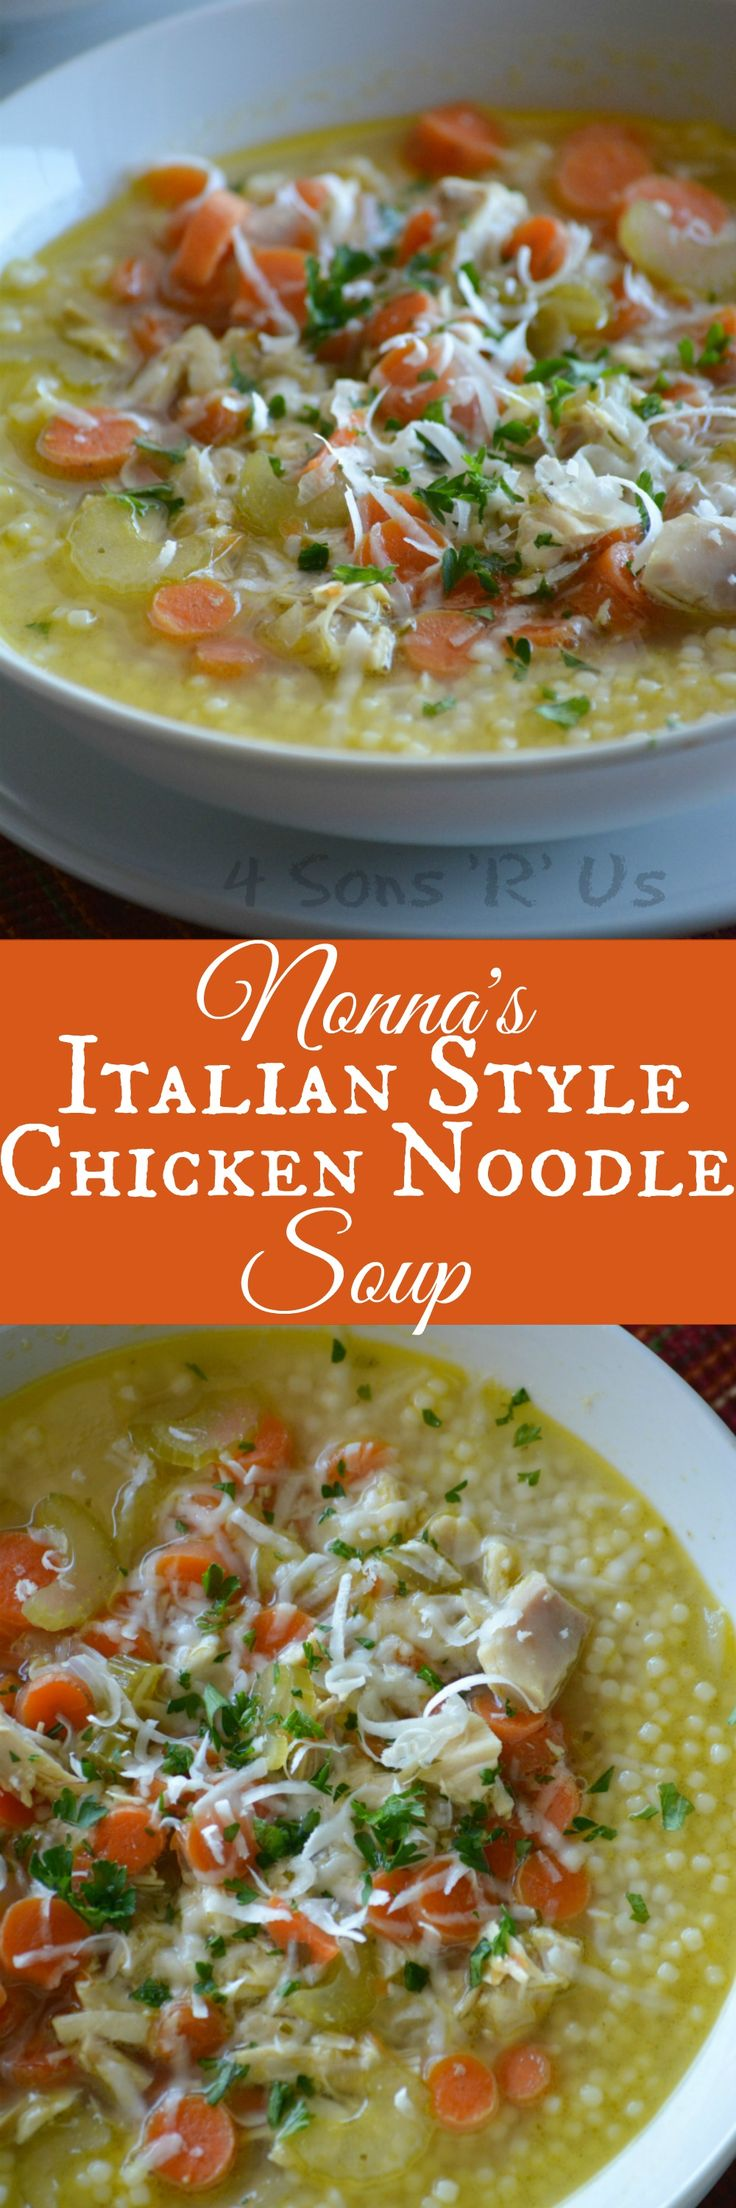 A quick and easy soup, you'll be surprised by the rich flavor in such a simple recipe. Nonna's Italian Style Chicken Noodle Soup tastes like Grandma slaved away at the stove all day stirring the love into every last drop. I am assuming by now we've all seen the Campbell's[Read more]